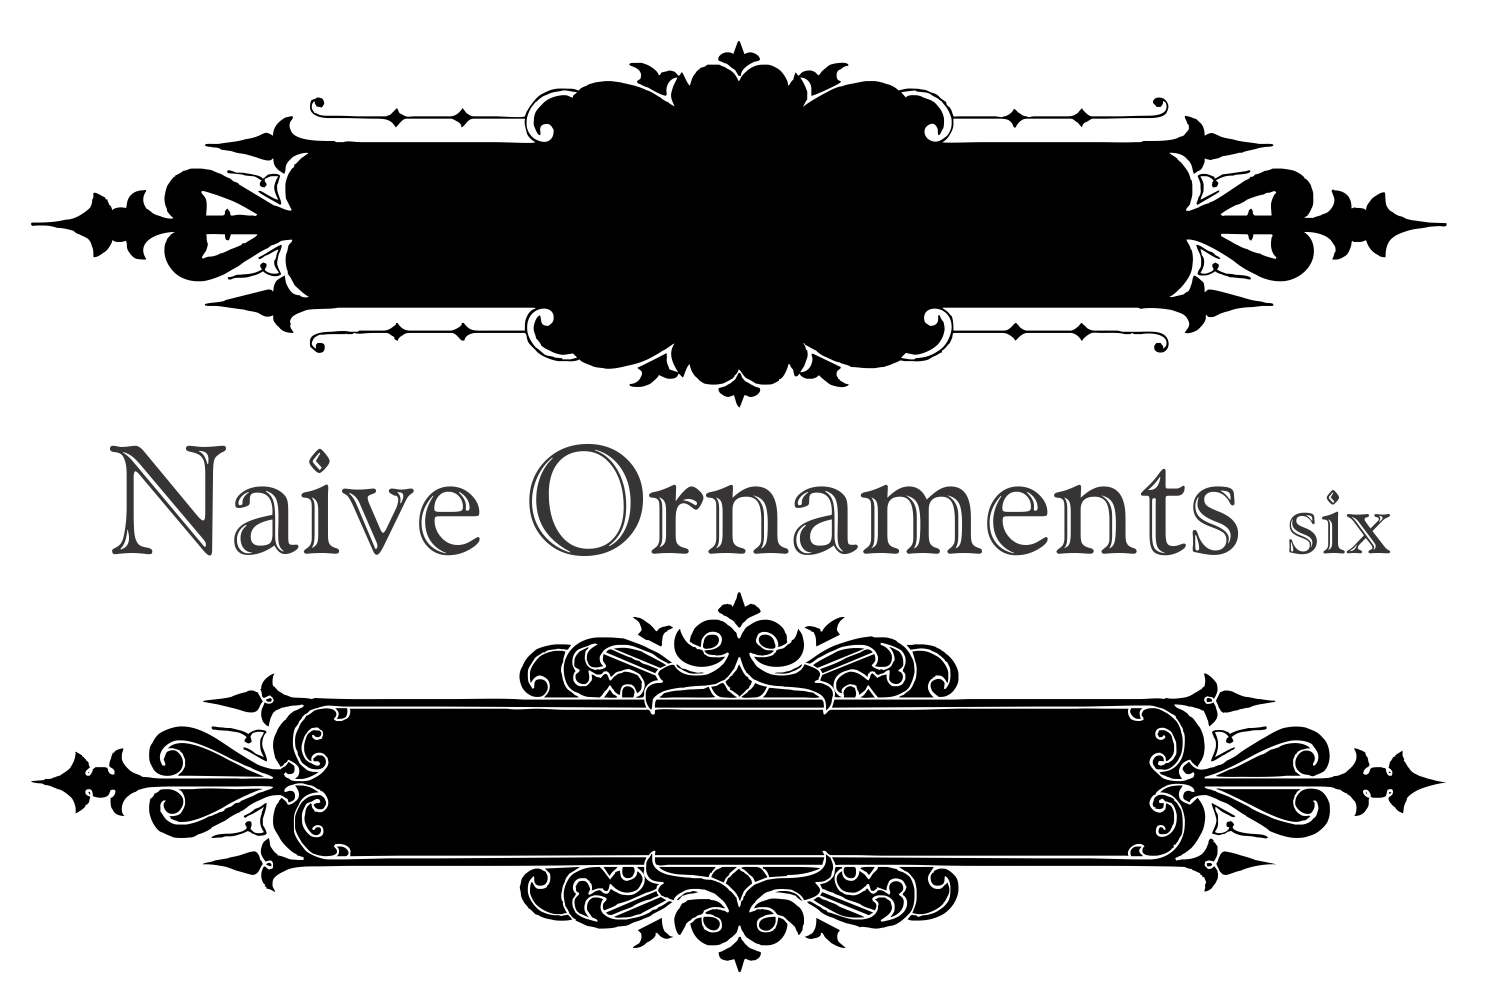 Naive Ornaments Six example image 4